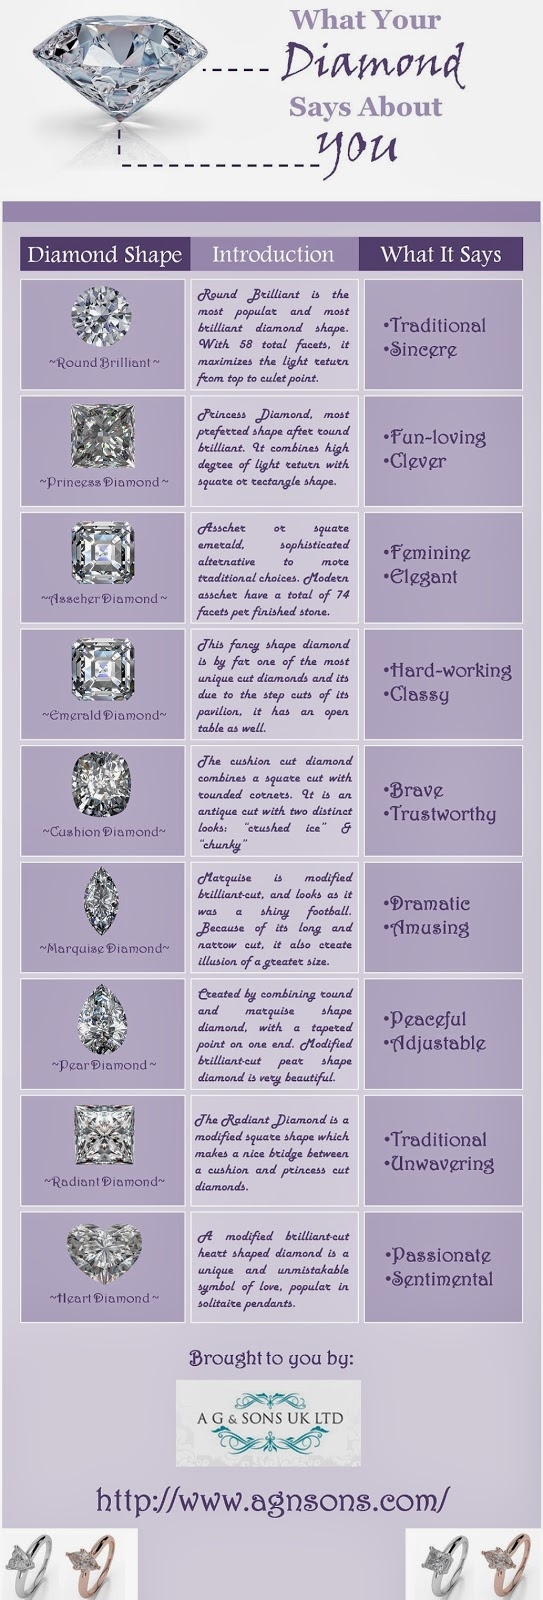 what your diamond says about you